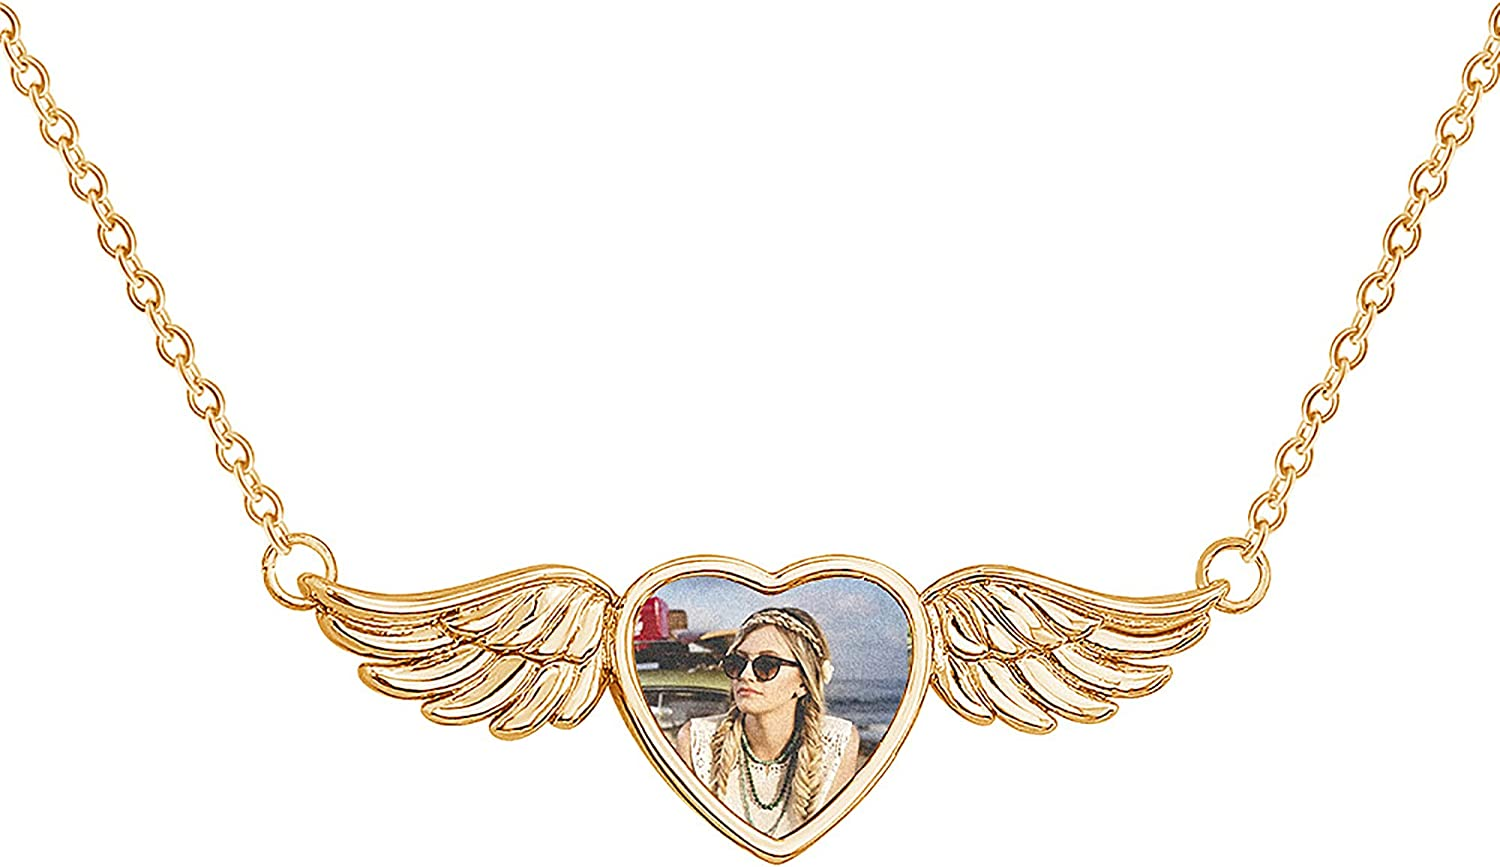 Personalized Heart Locket Necklace, Photo Necklace Picture Pendant, Custom Angel Wings Name Jewelry Gifts for Mom